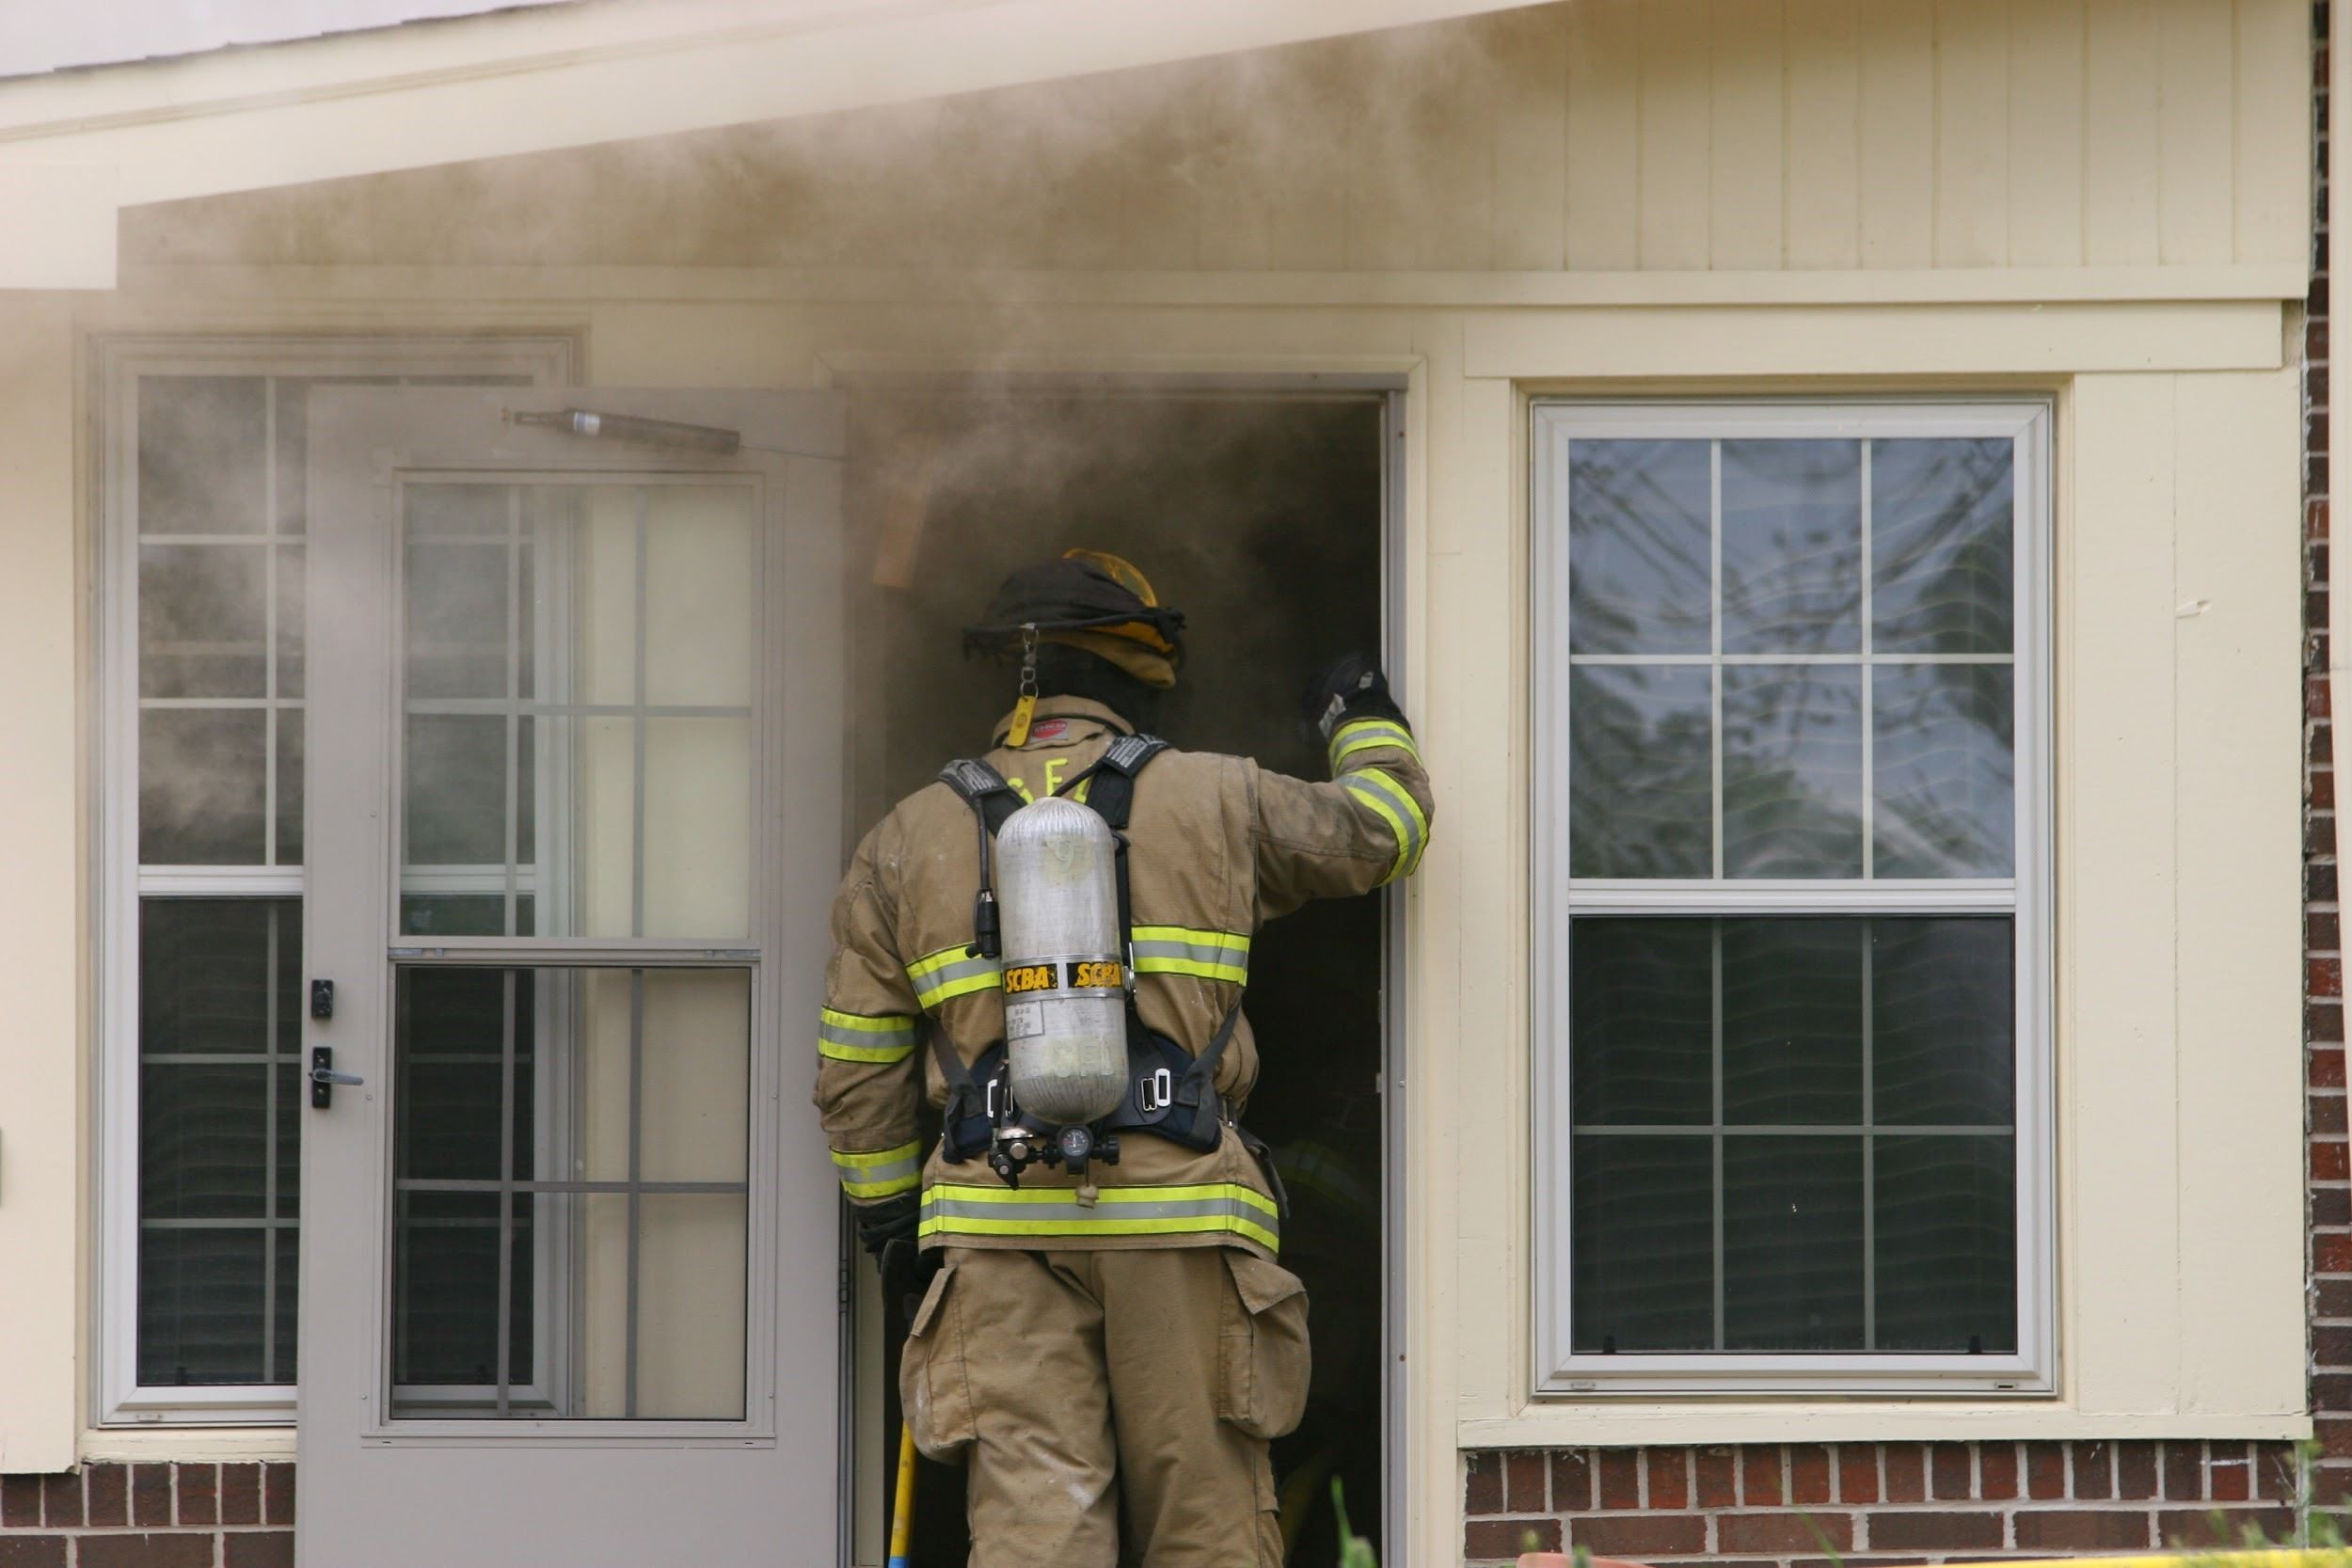 Fireman Entering Home with smoke coming out front door